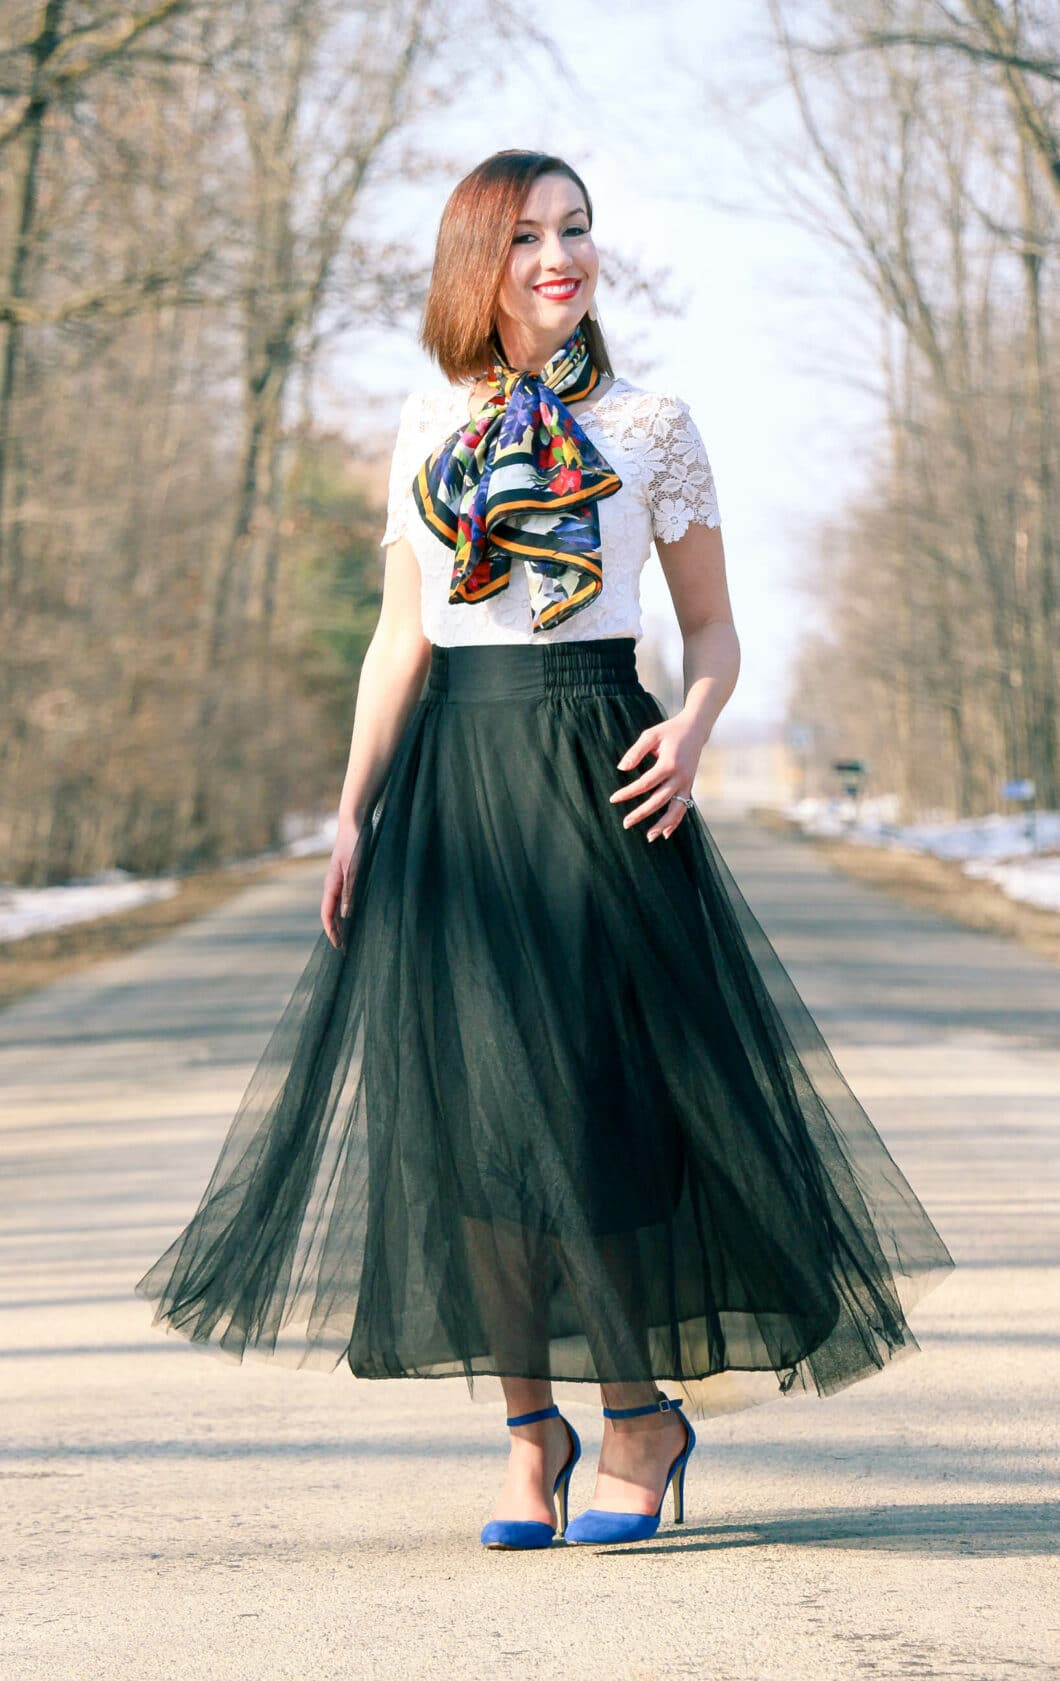 More Maxi Skirts, Please